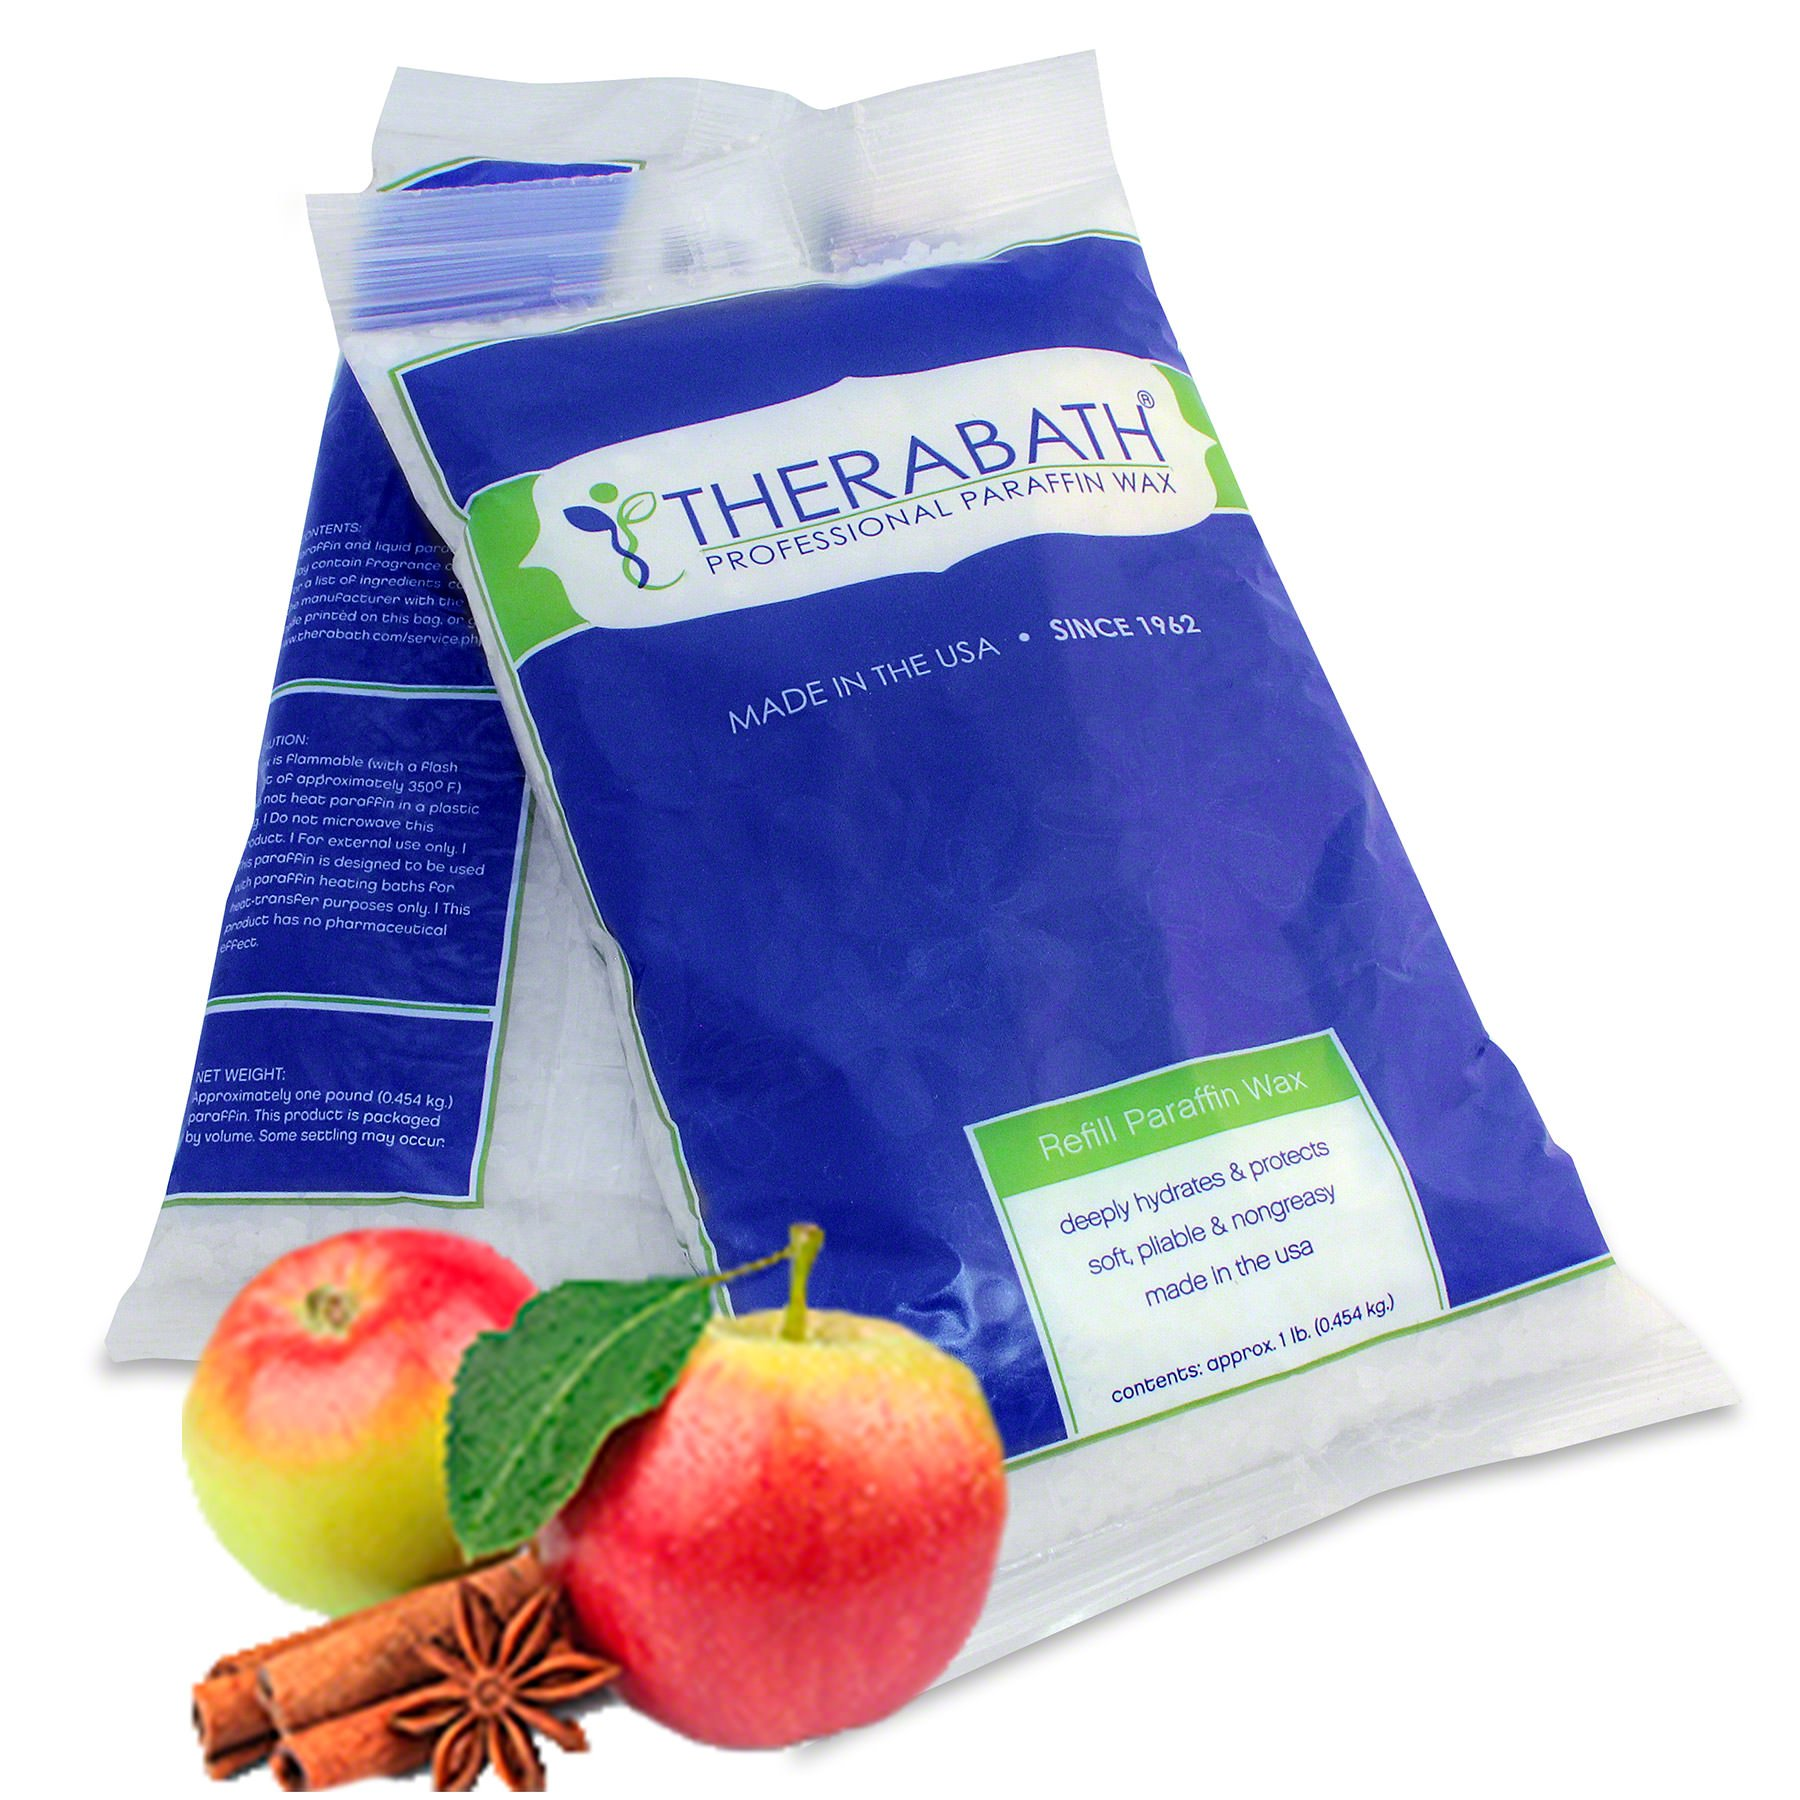 Therabath Paraffin Wax Refill - Use To Relieve Arthritis Pain and Stiff Muscles - Deeply Hydrates and Protects - 6 lbs Warm Apple Spice by Therabath